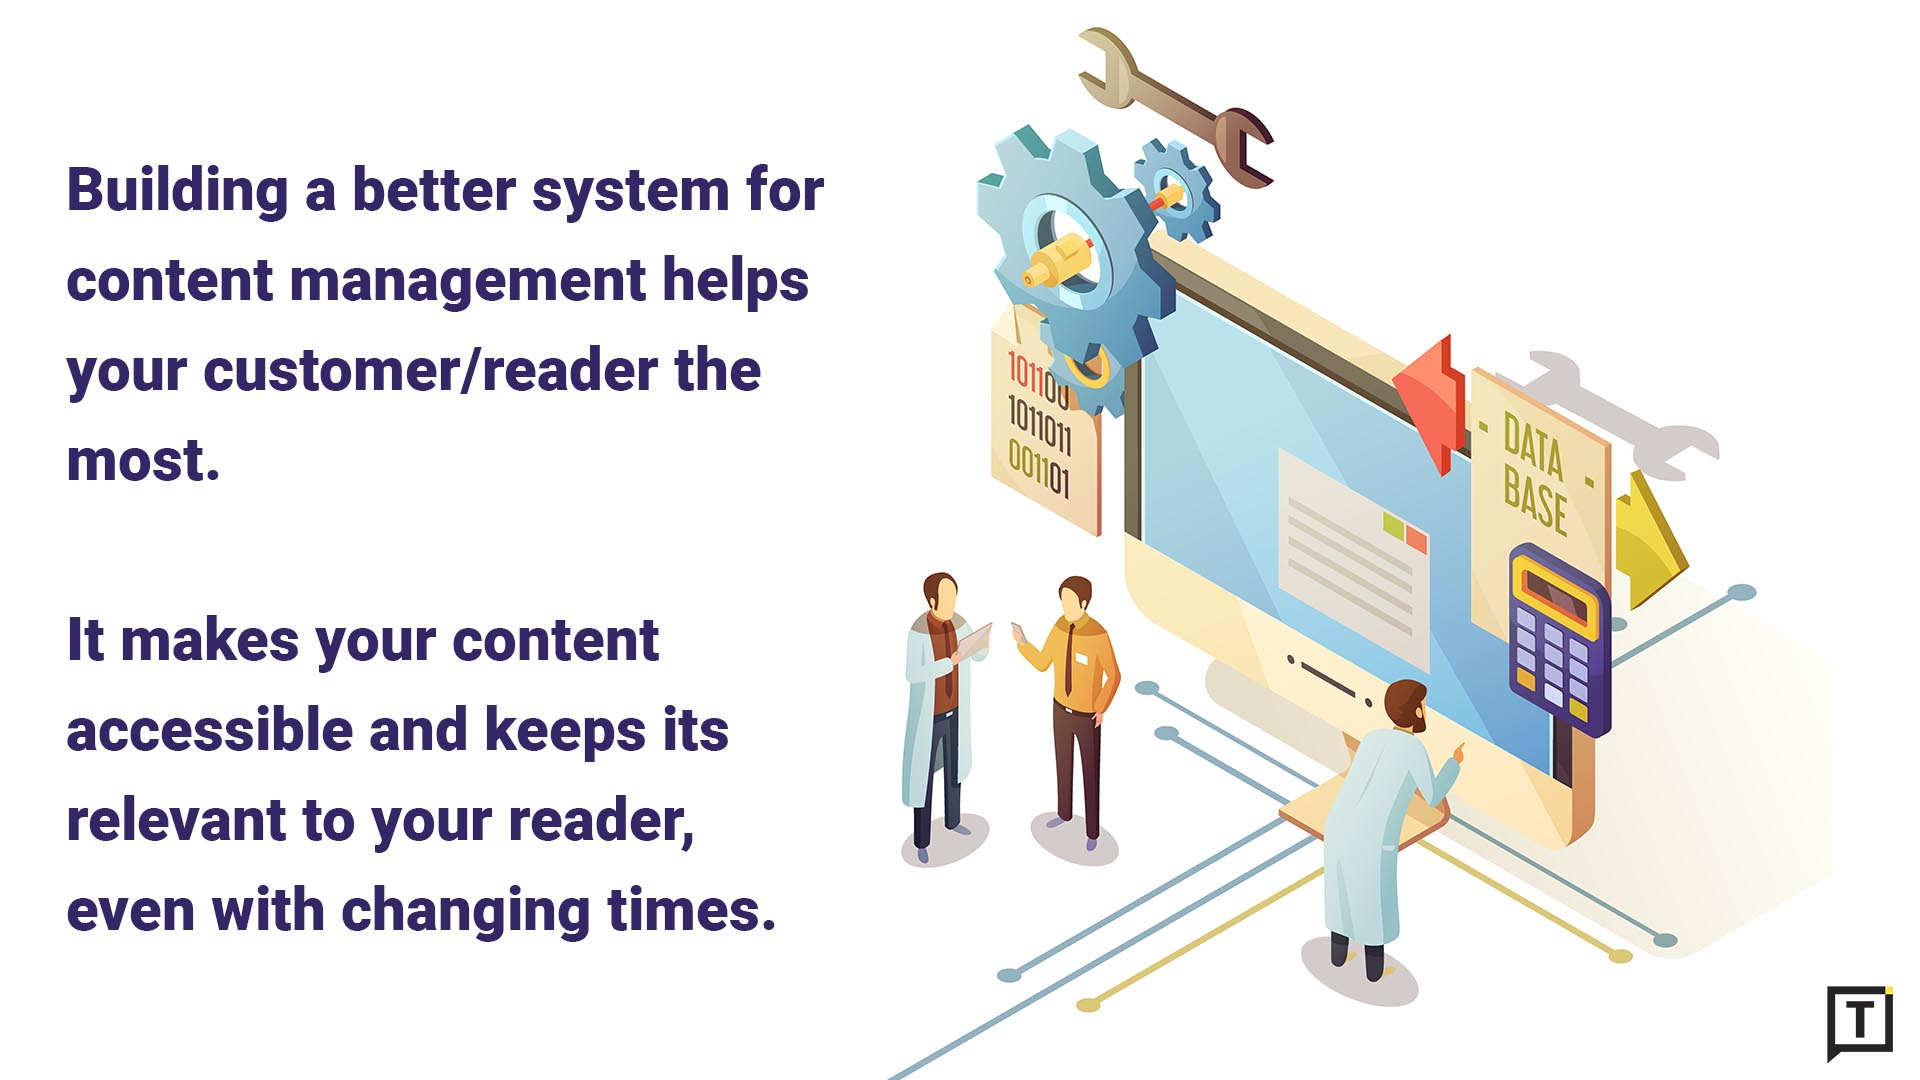 Better content management